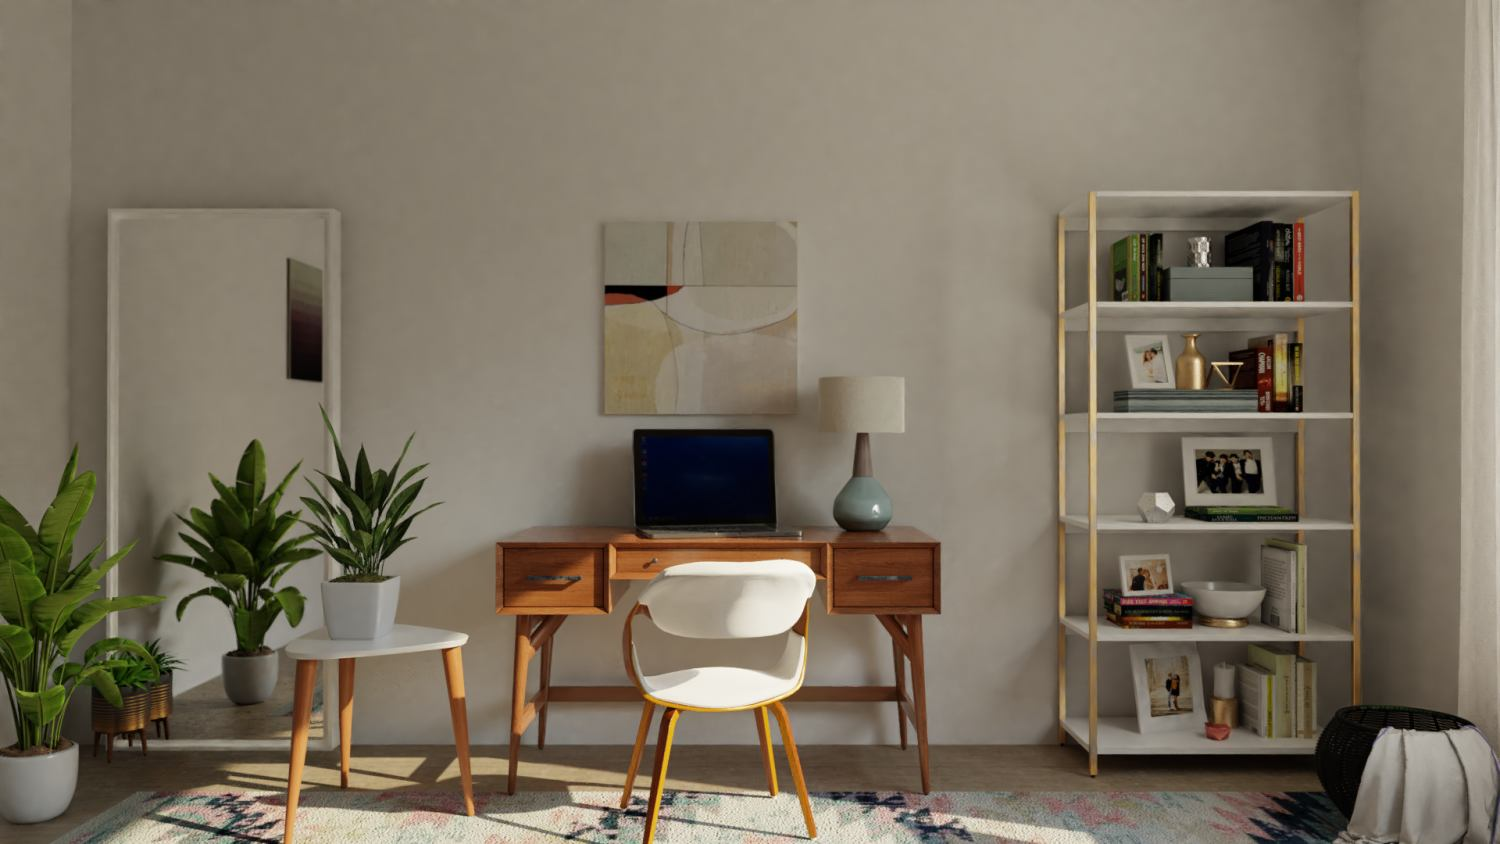 Functional, Productive Mid-Century Modern Home Office Design By Spacejoy